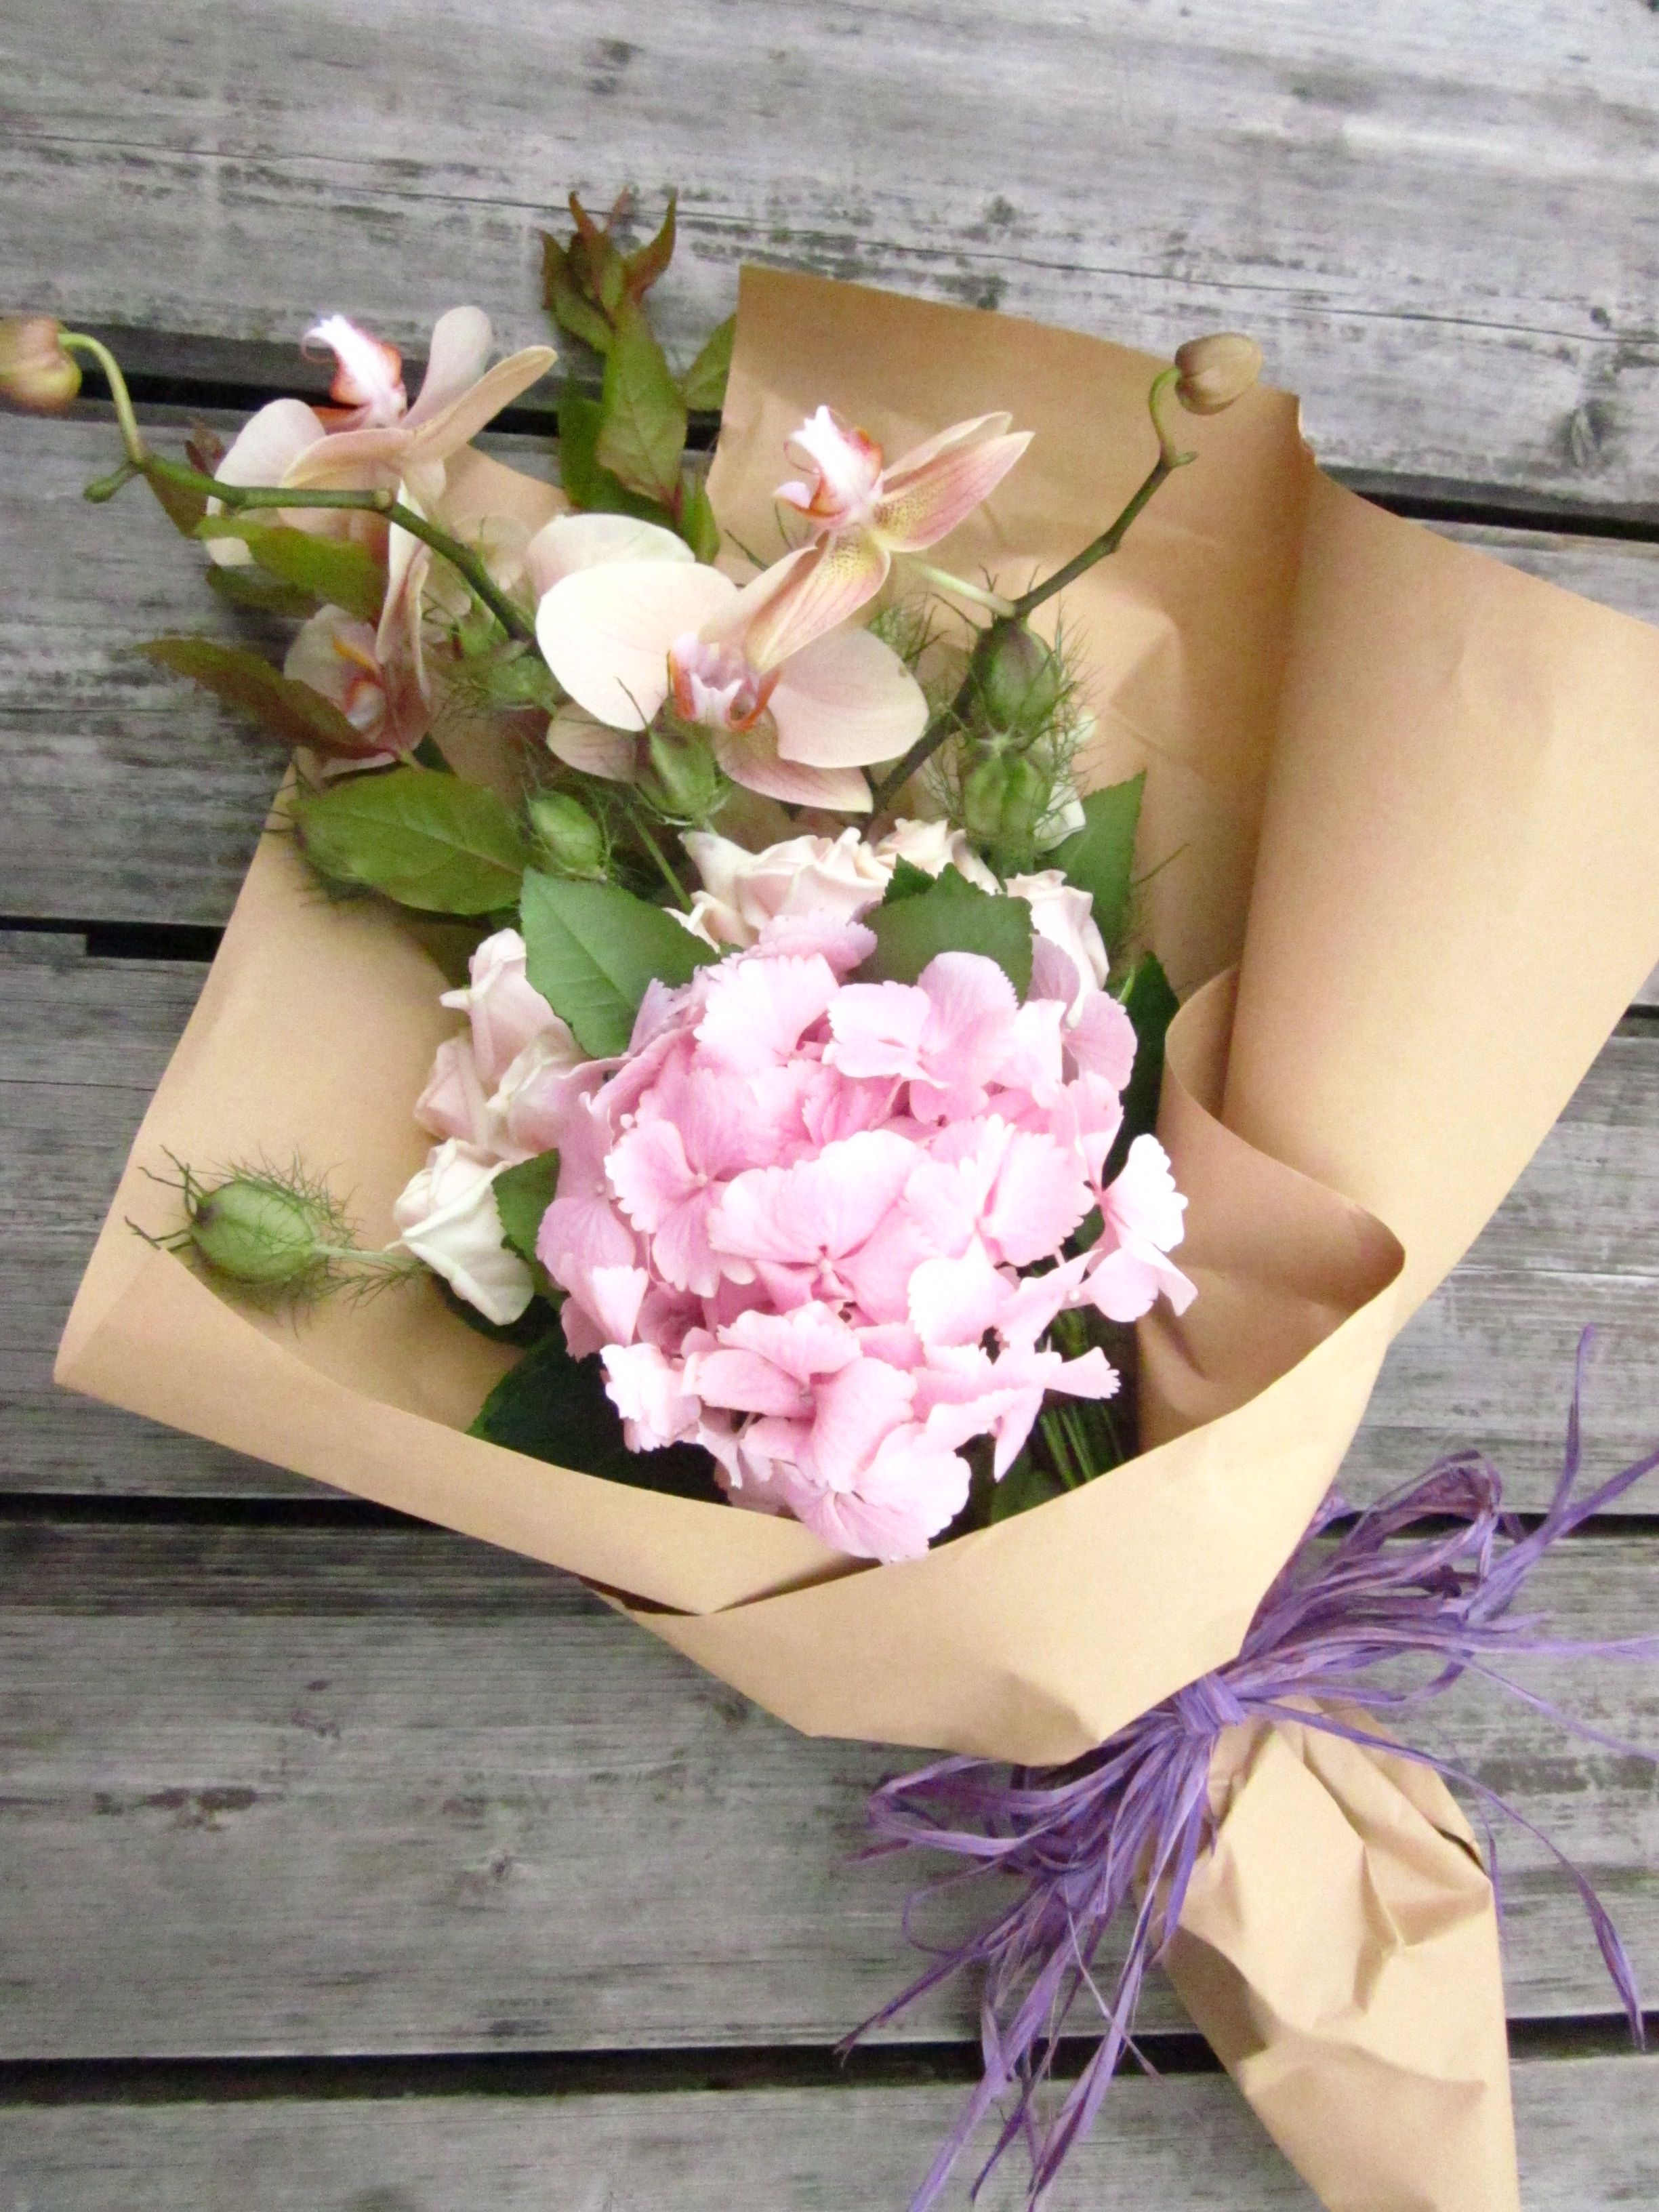 Flowers wrapped in brown paper pinterest brown flowers wrapped in brown paper mightylinksfo